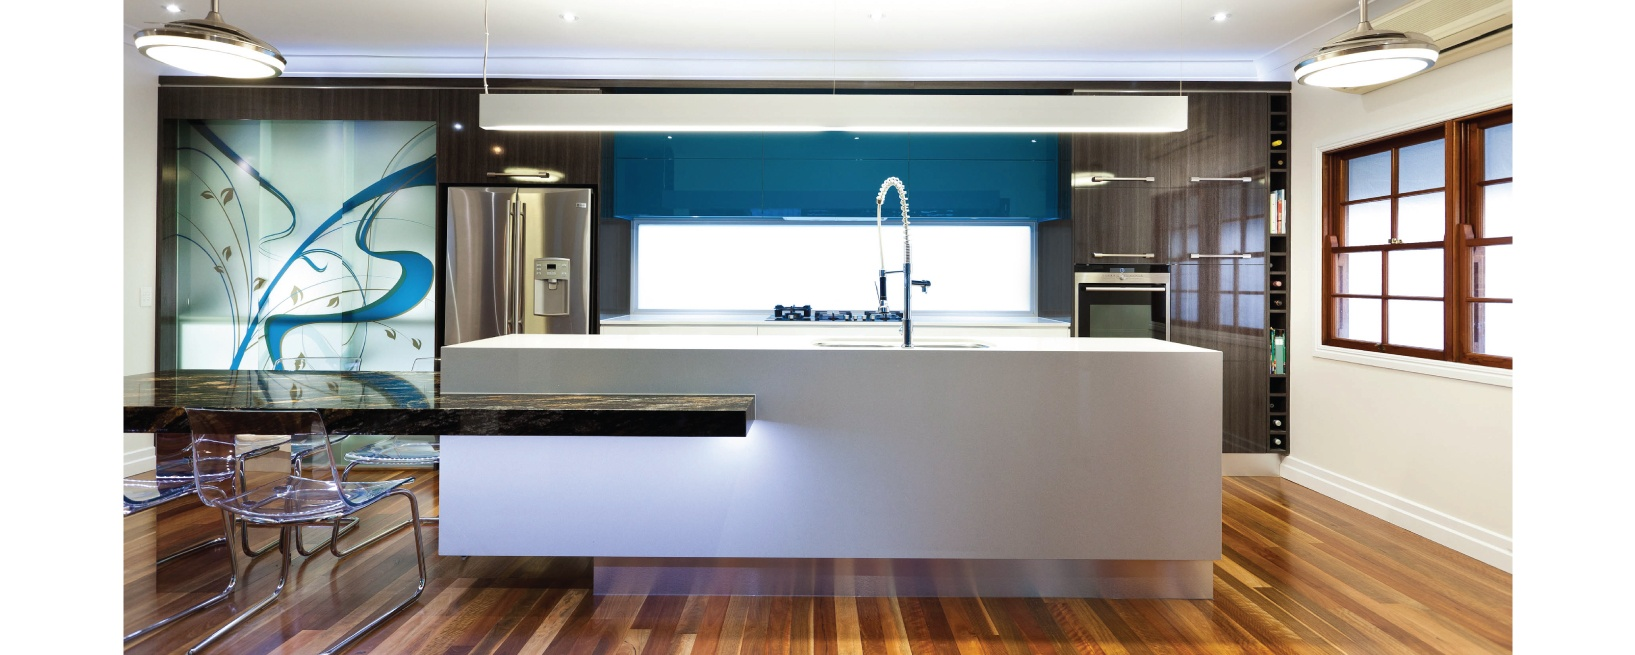 Sublime Luxury Kitchen Bathrooms Kitchen Bathroom Renovations